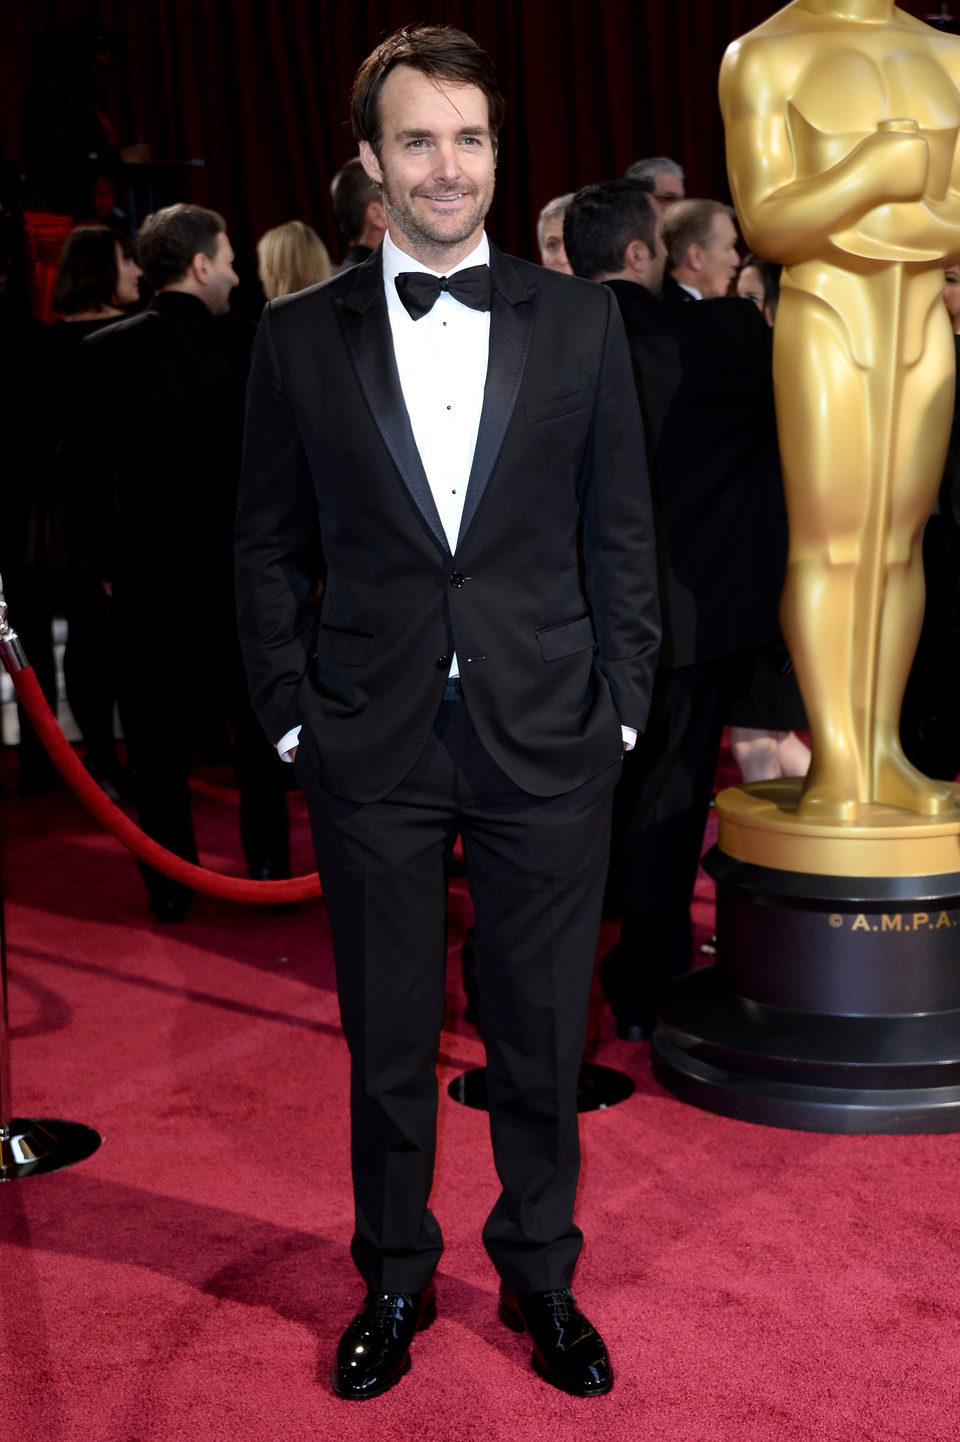 Will Forte On The Red Carpet At The  Oscars